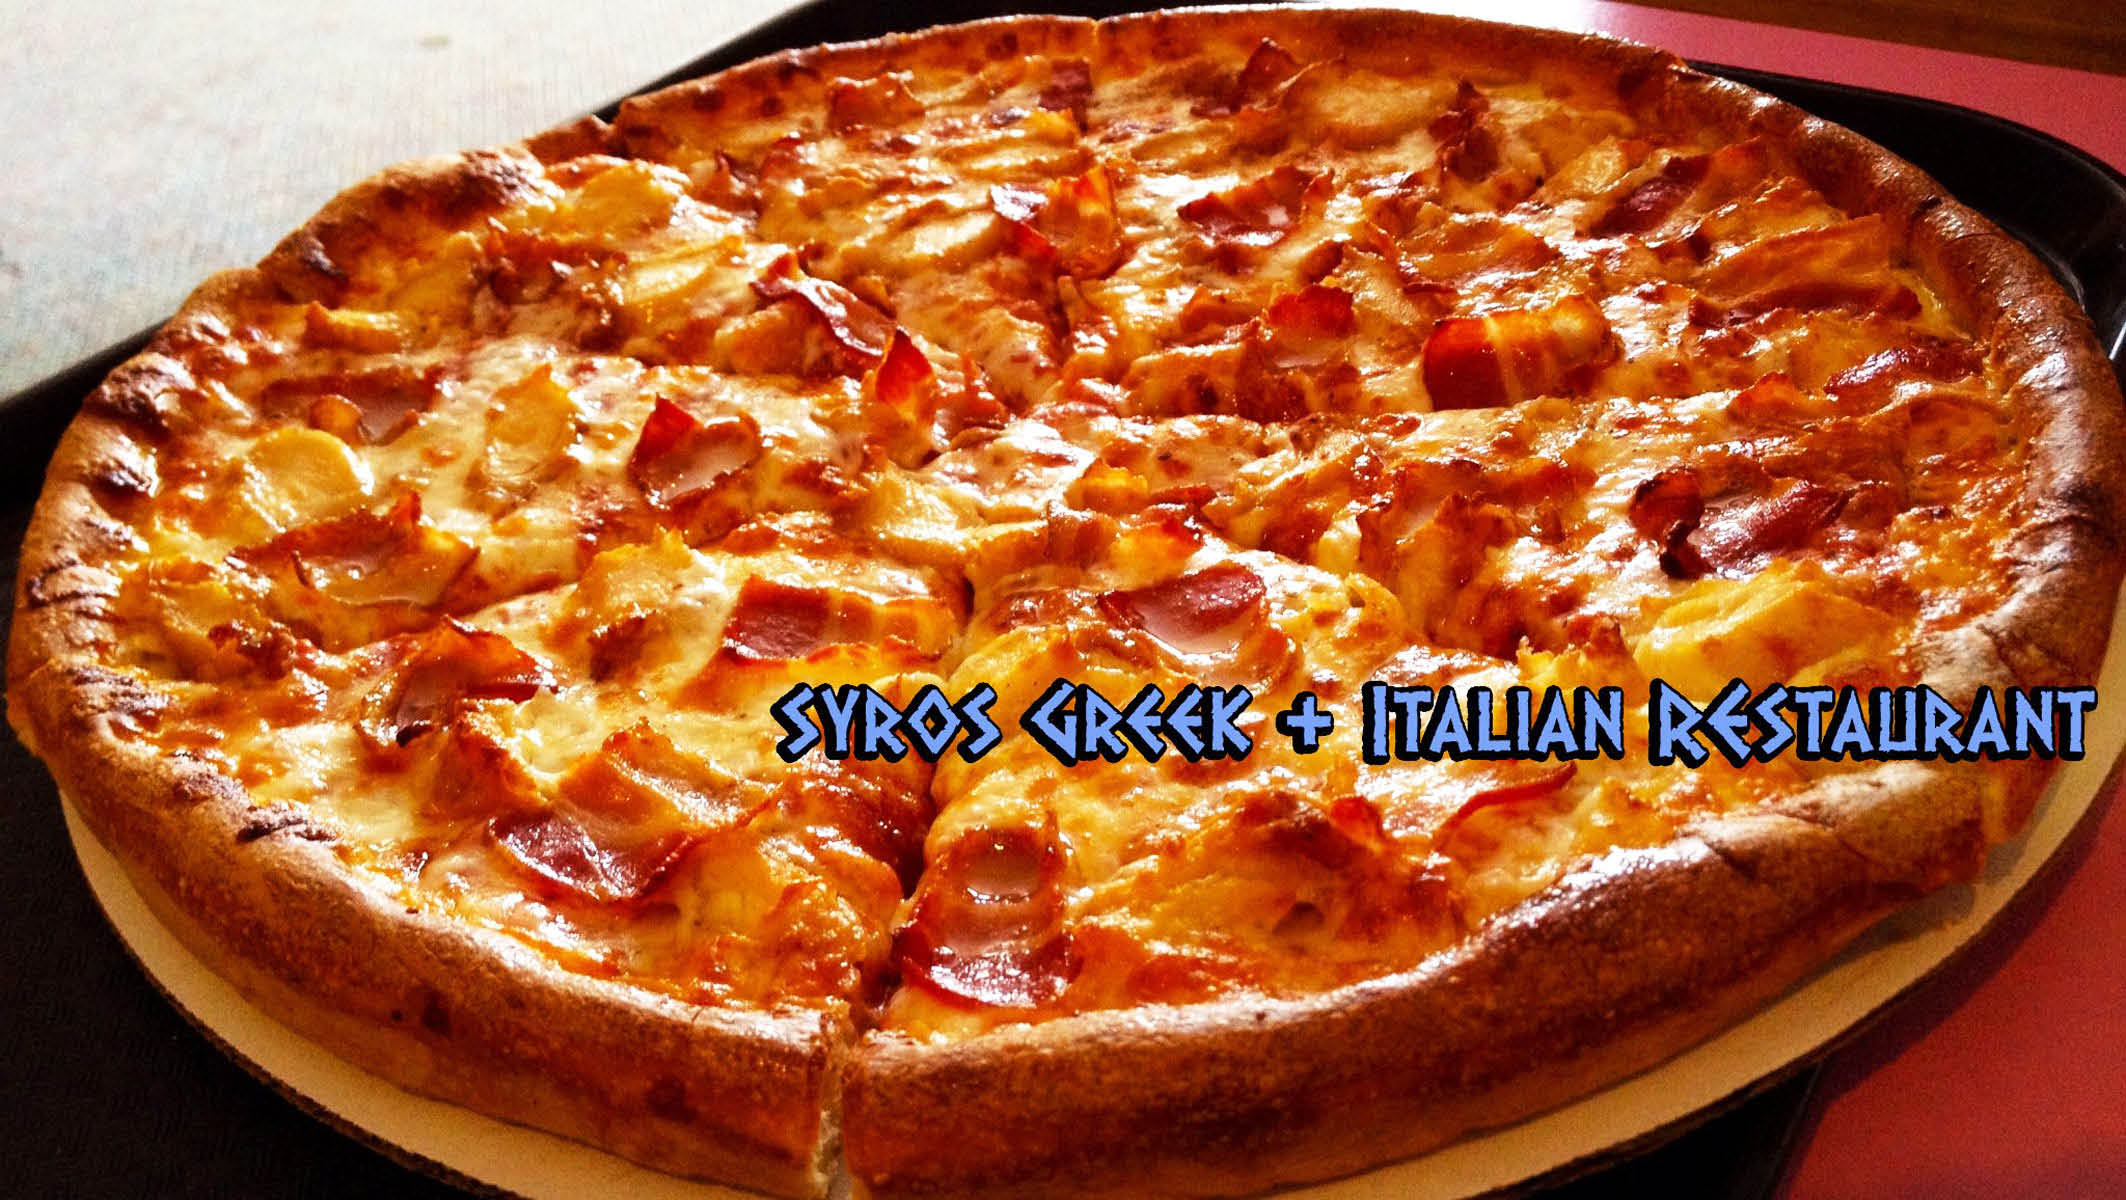 Syros Greek and Italian Restaurant pizza